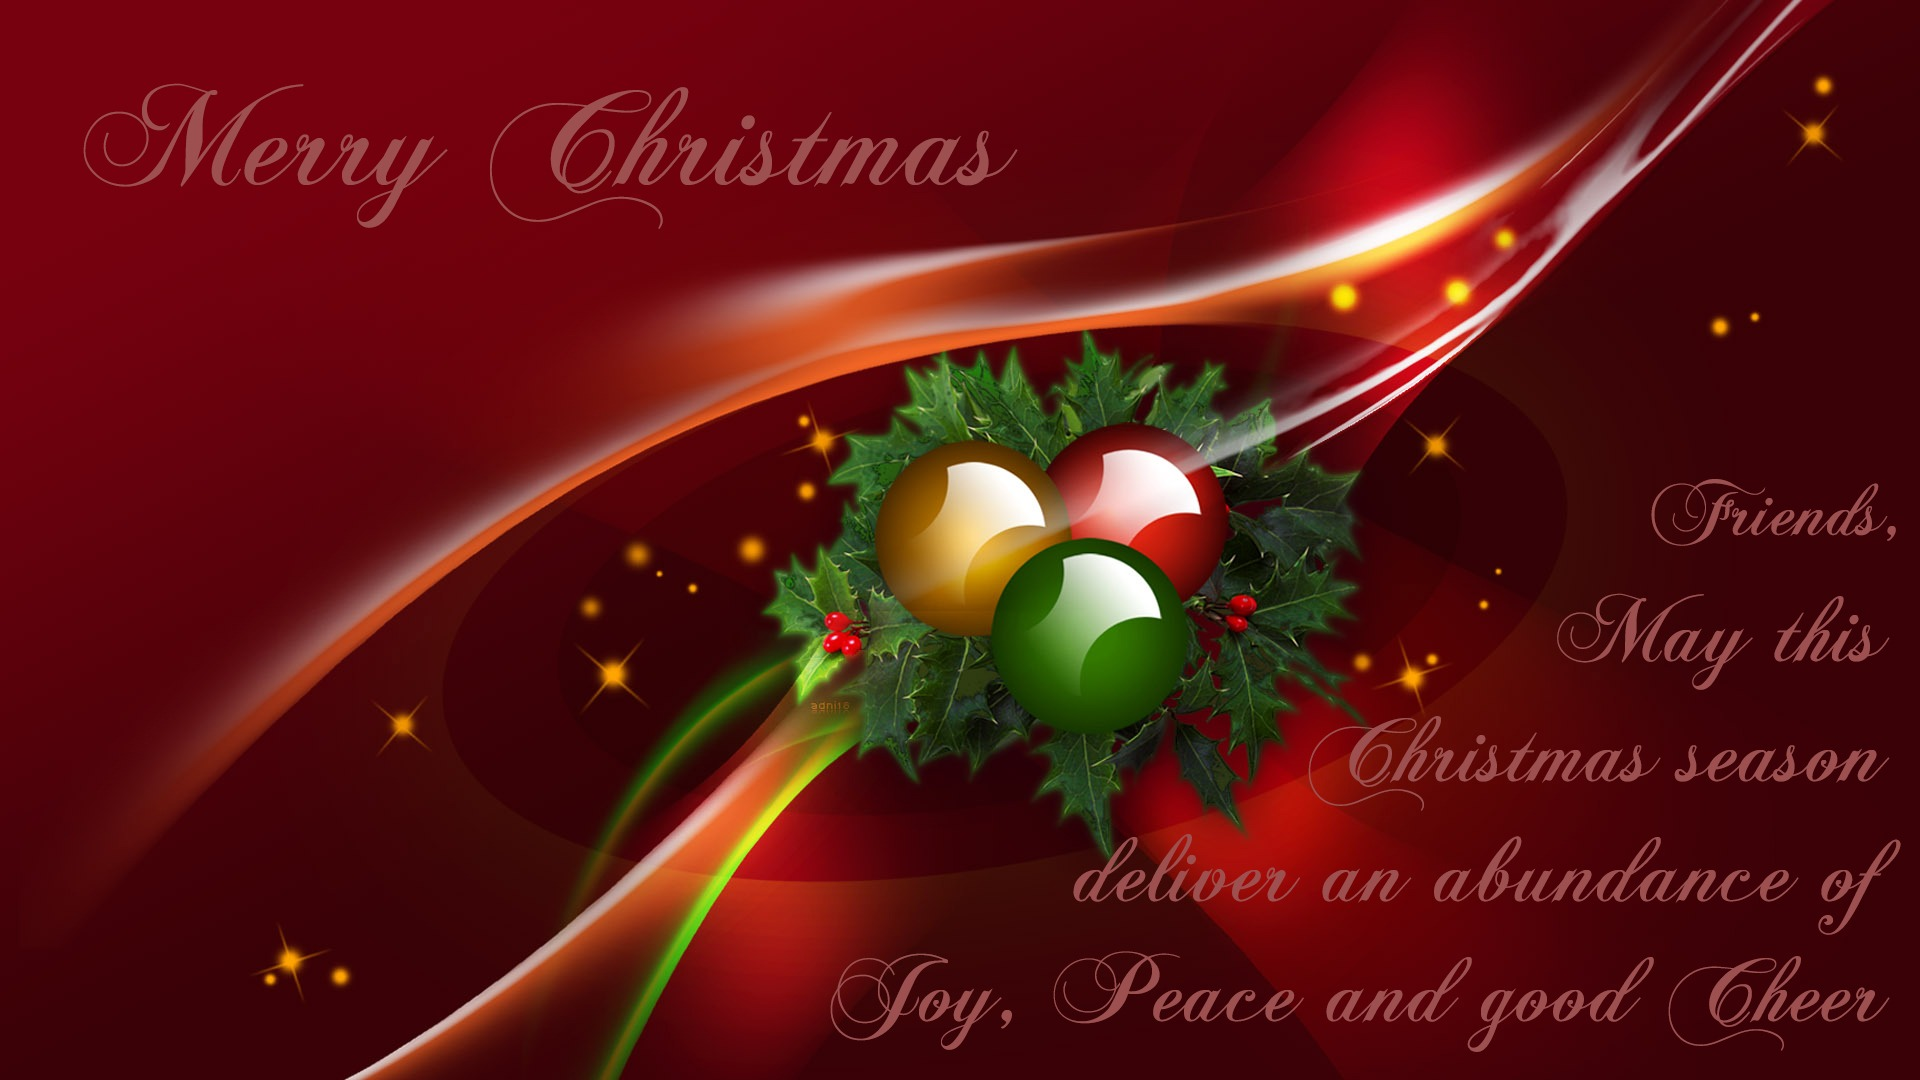 Merry Christmas Wishes Holiday Wallpaper 1920x1080